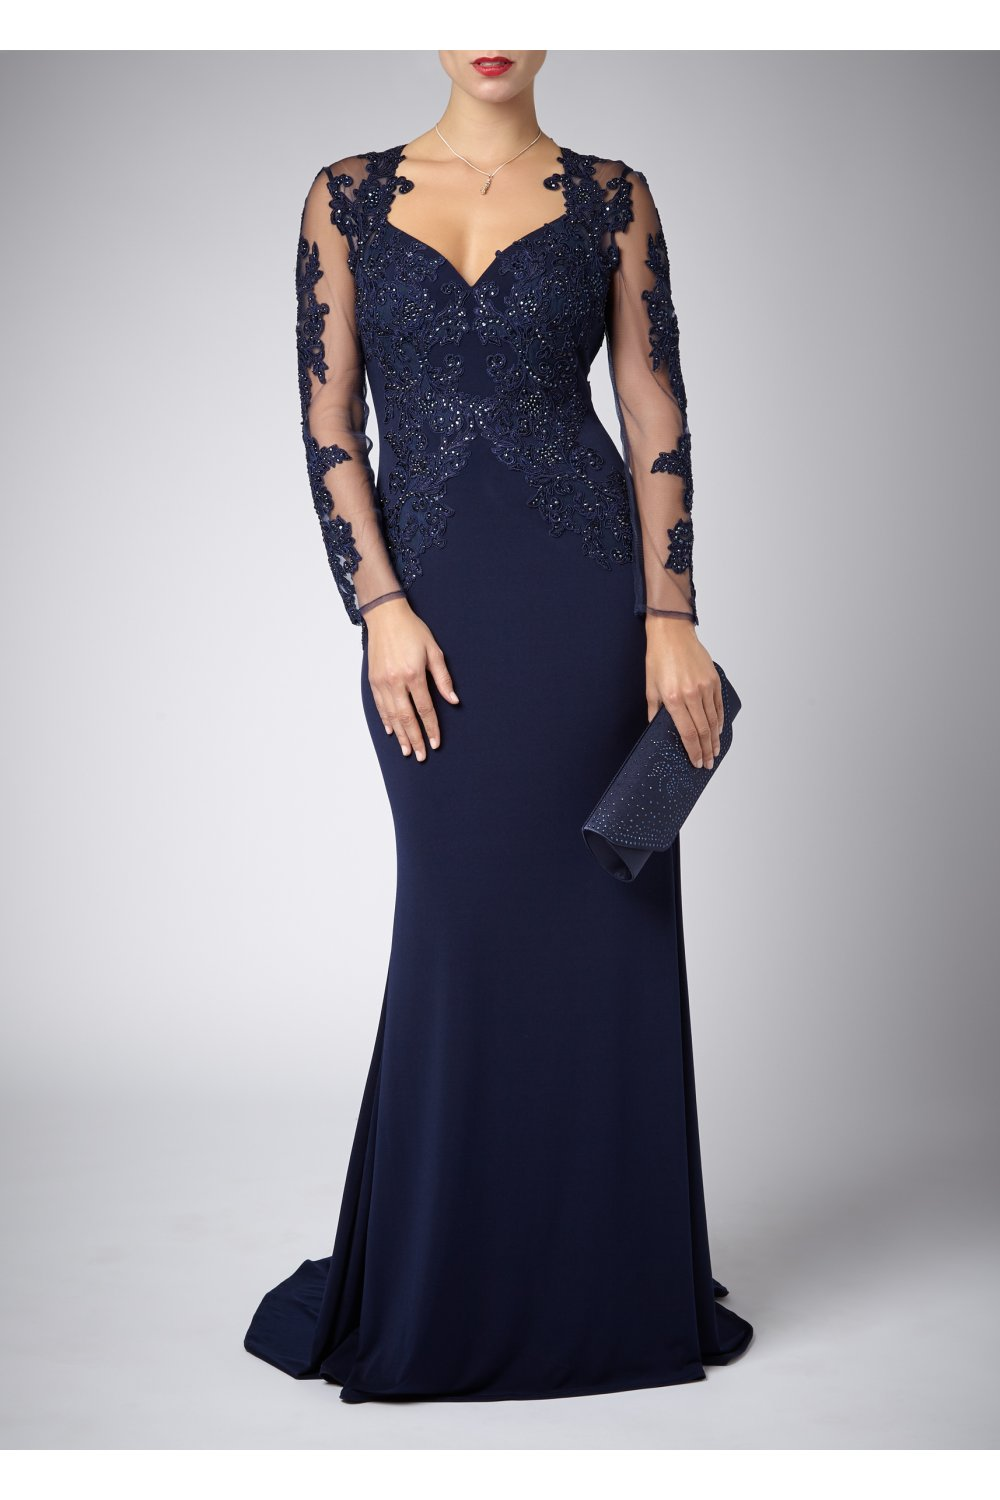 Mascara Pour La Femme Lace Sleeve Dress In Navy